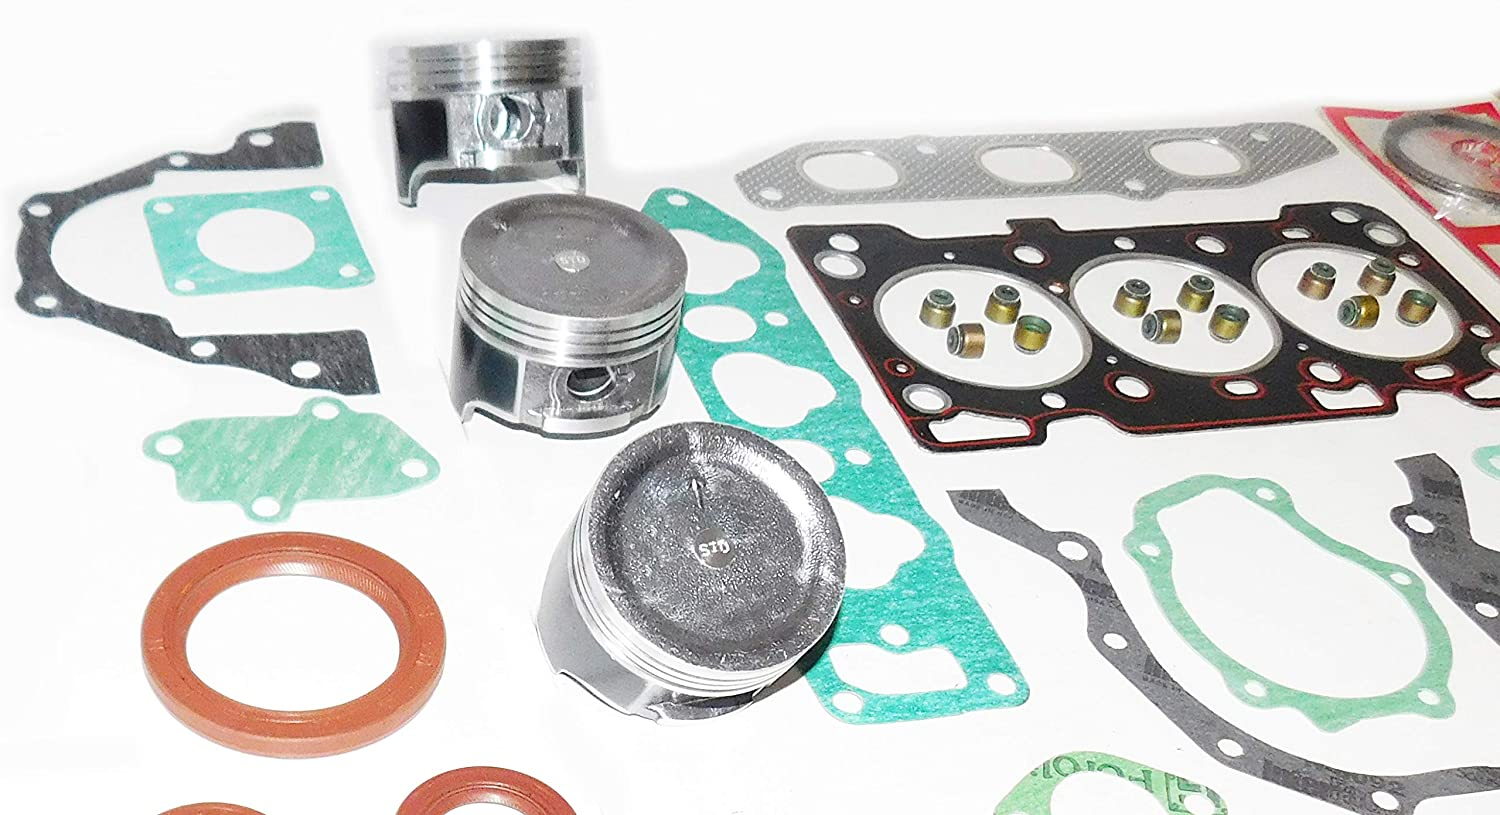 STD 68.5 x 72.0 mm SUZUKI F8D 796 cc 48.6 cu in SOHC 12-valve 3 CYL ENGINE REBUILD KIT RECO KIT PISTONS RINGS GASKET ENGINE BEARINGS FITS MARUTI ALTO 800 MIGHTY BOY CARRY ALTO A STAR CELERIO